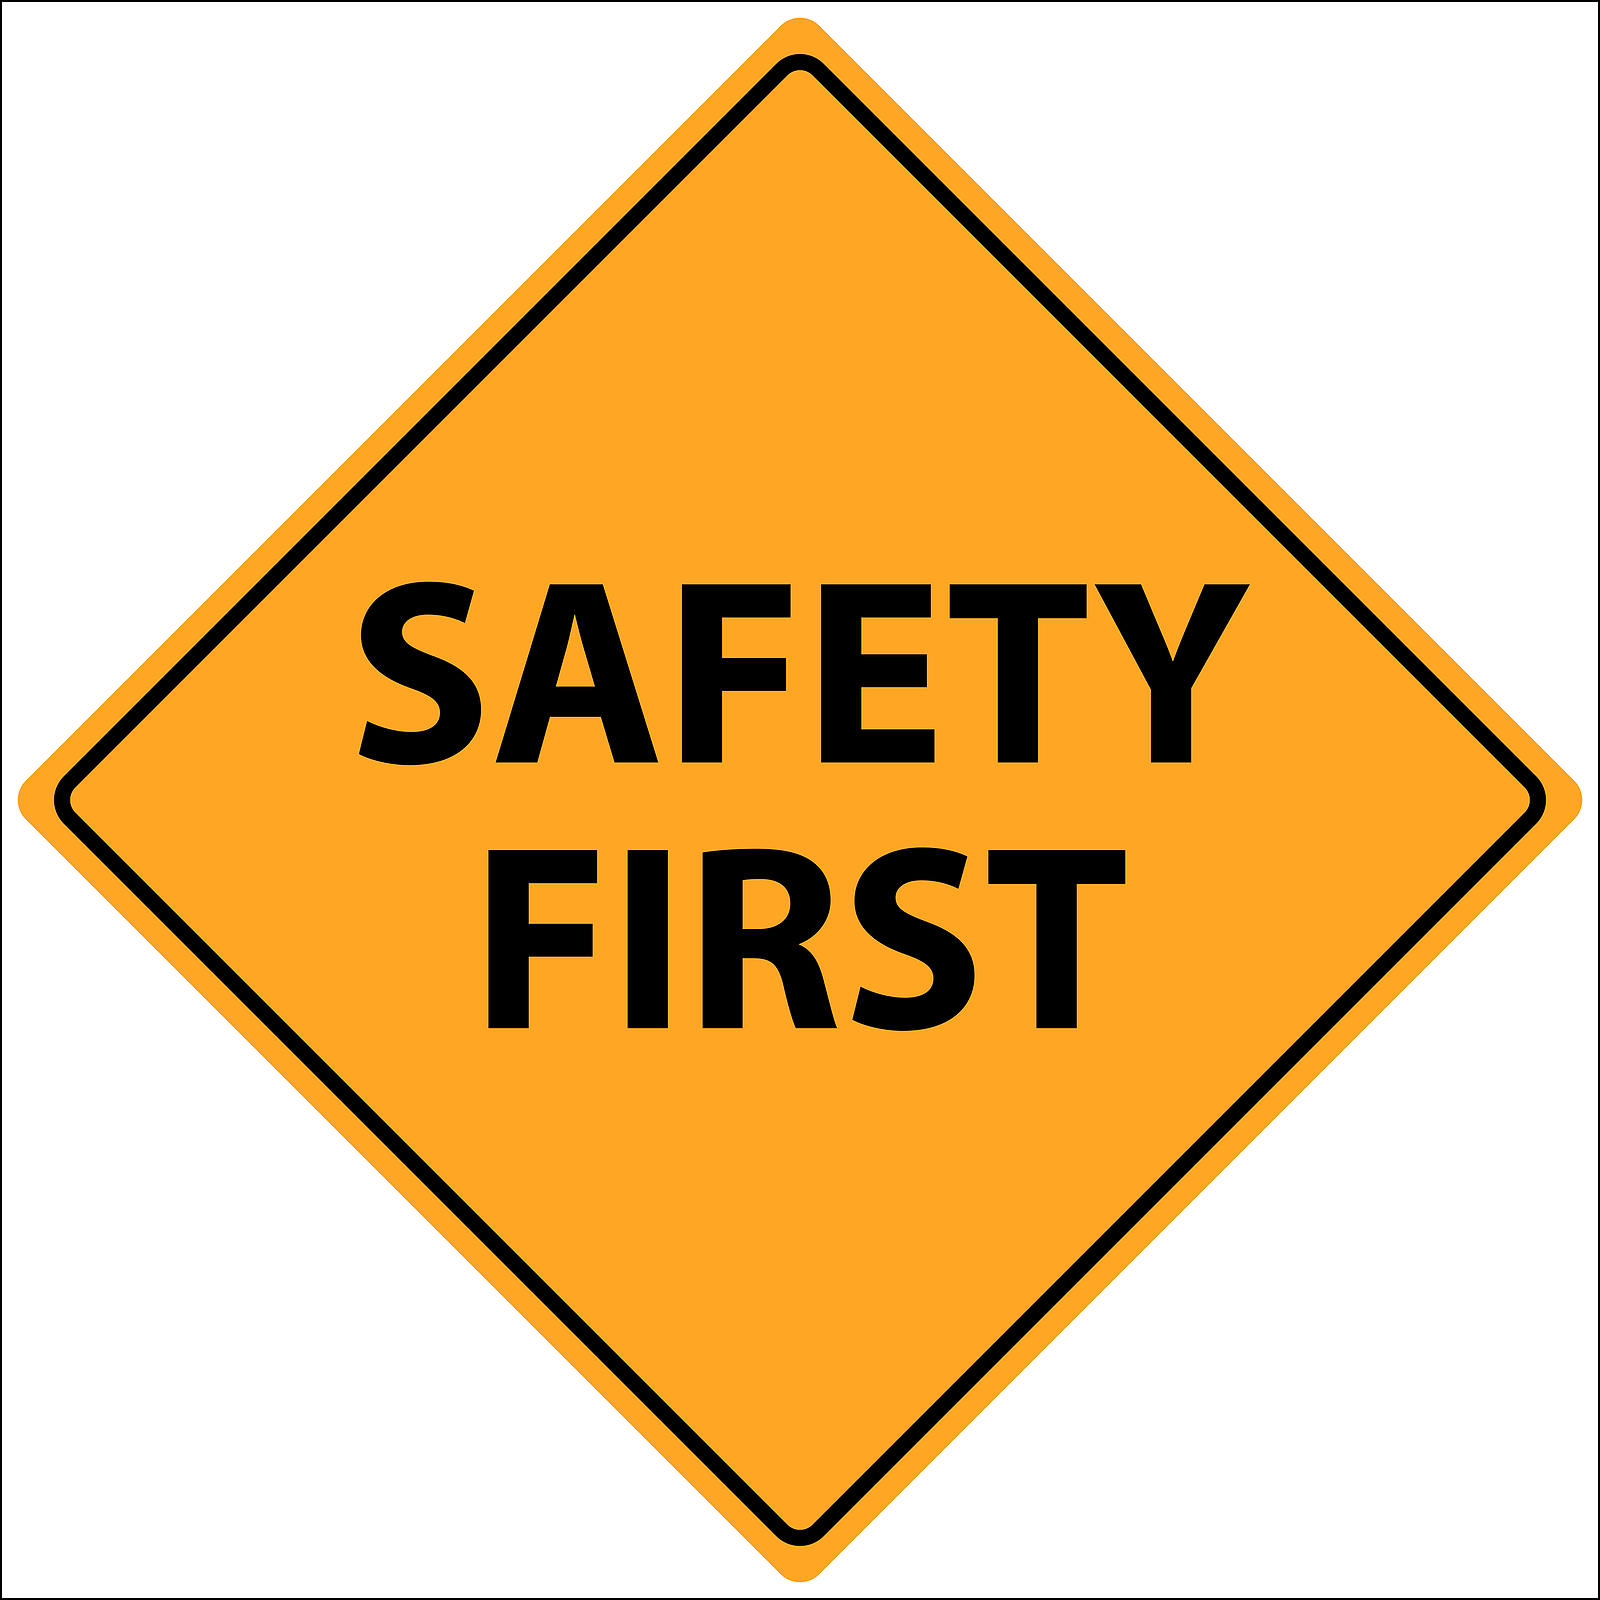 Safety instruction. Free sign cliparts download